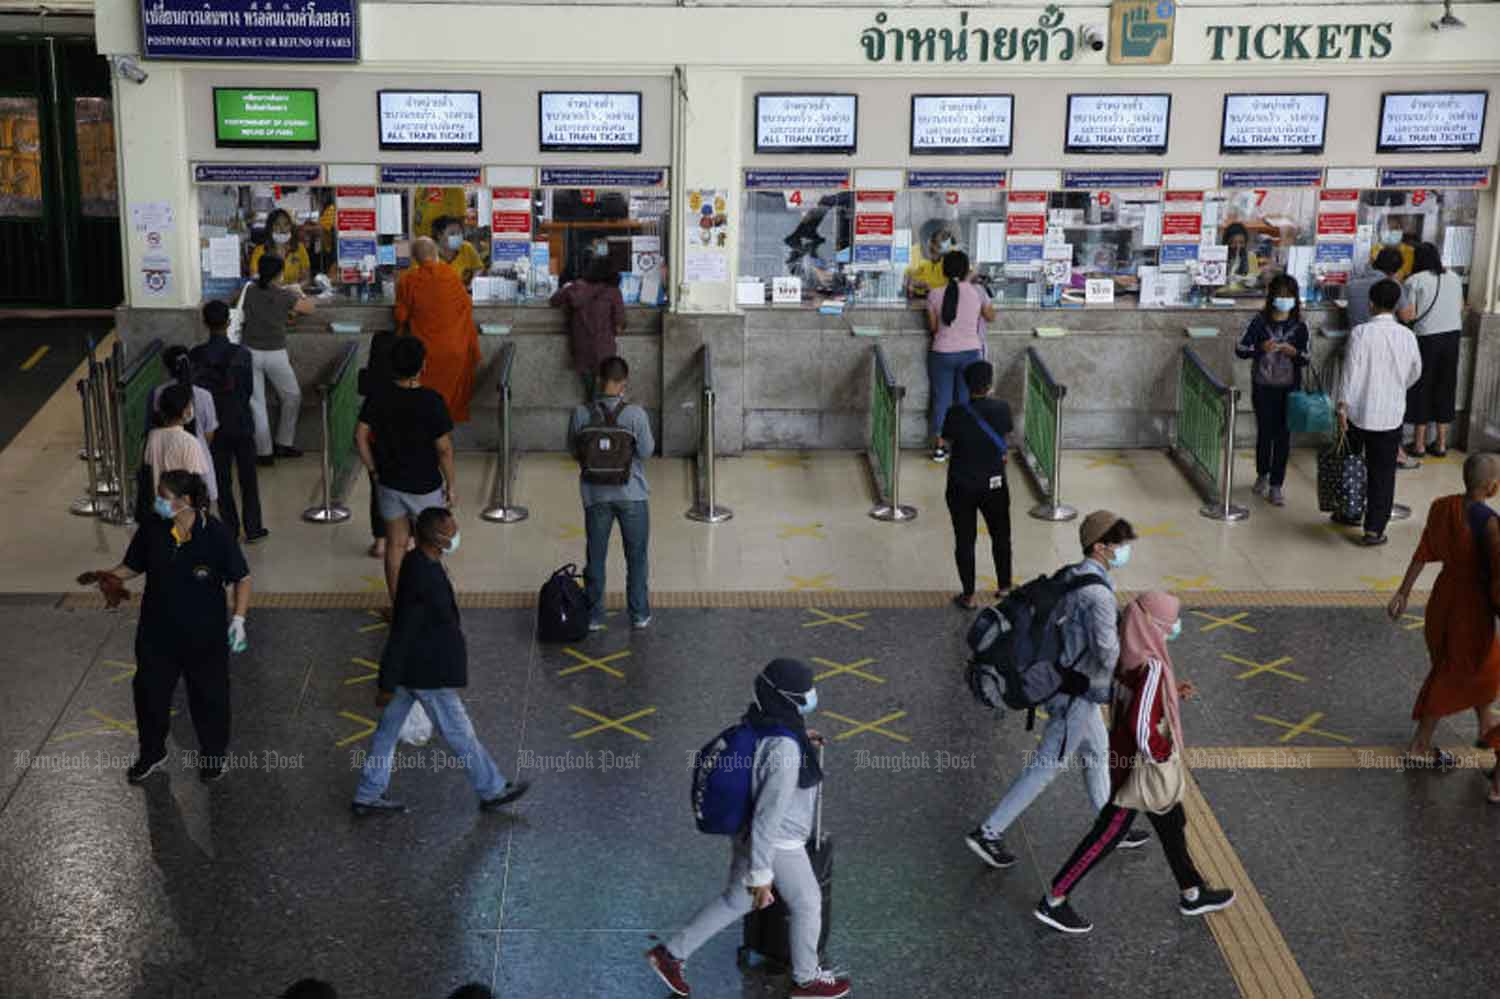 People are boarding trains at the Hua Lamphong station in Bangkok on Wednesday. (Photo: Wichan Charoenkiatpakul)